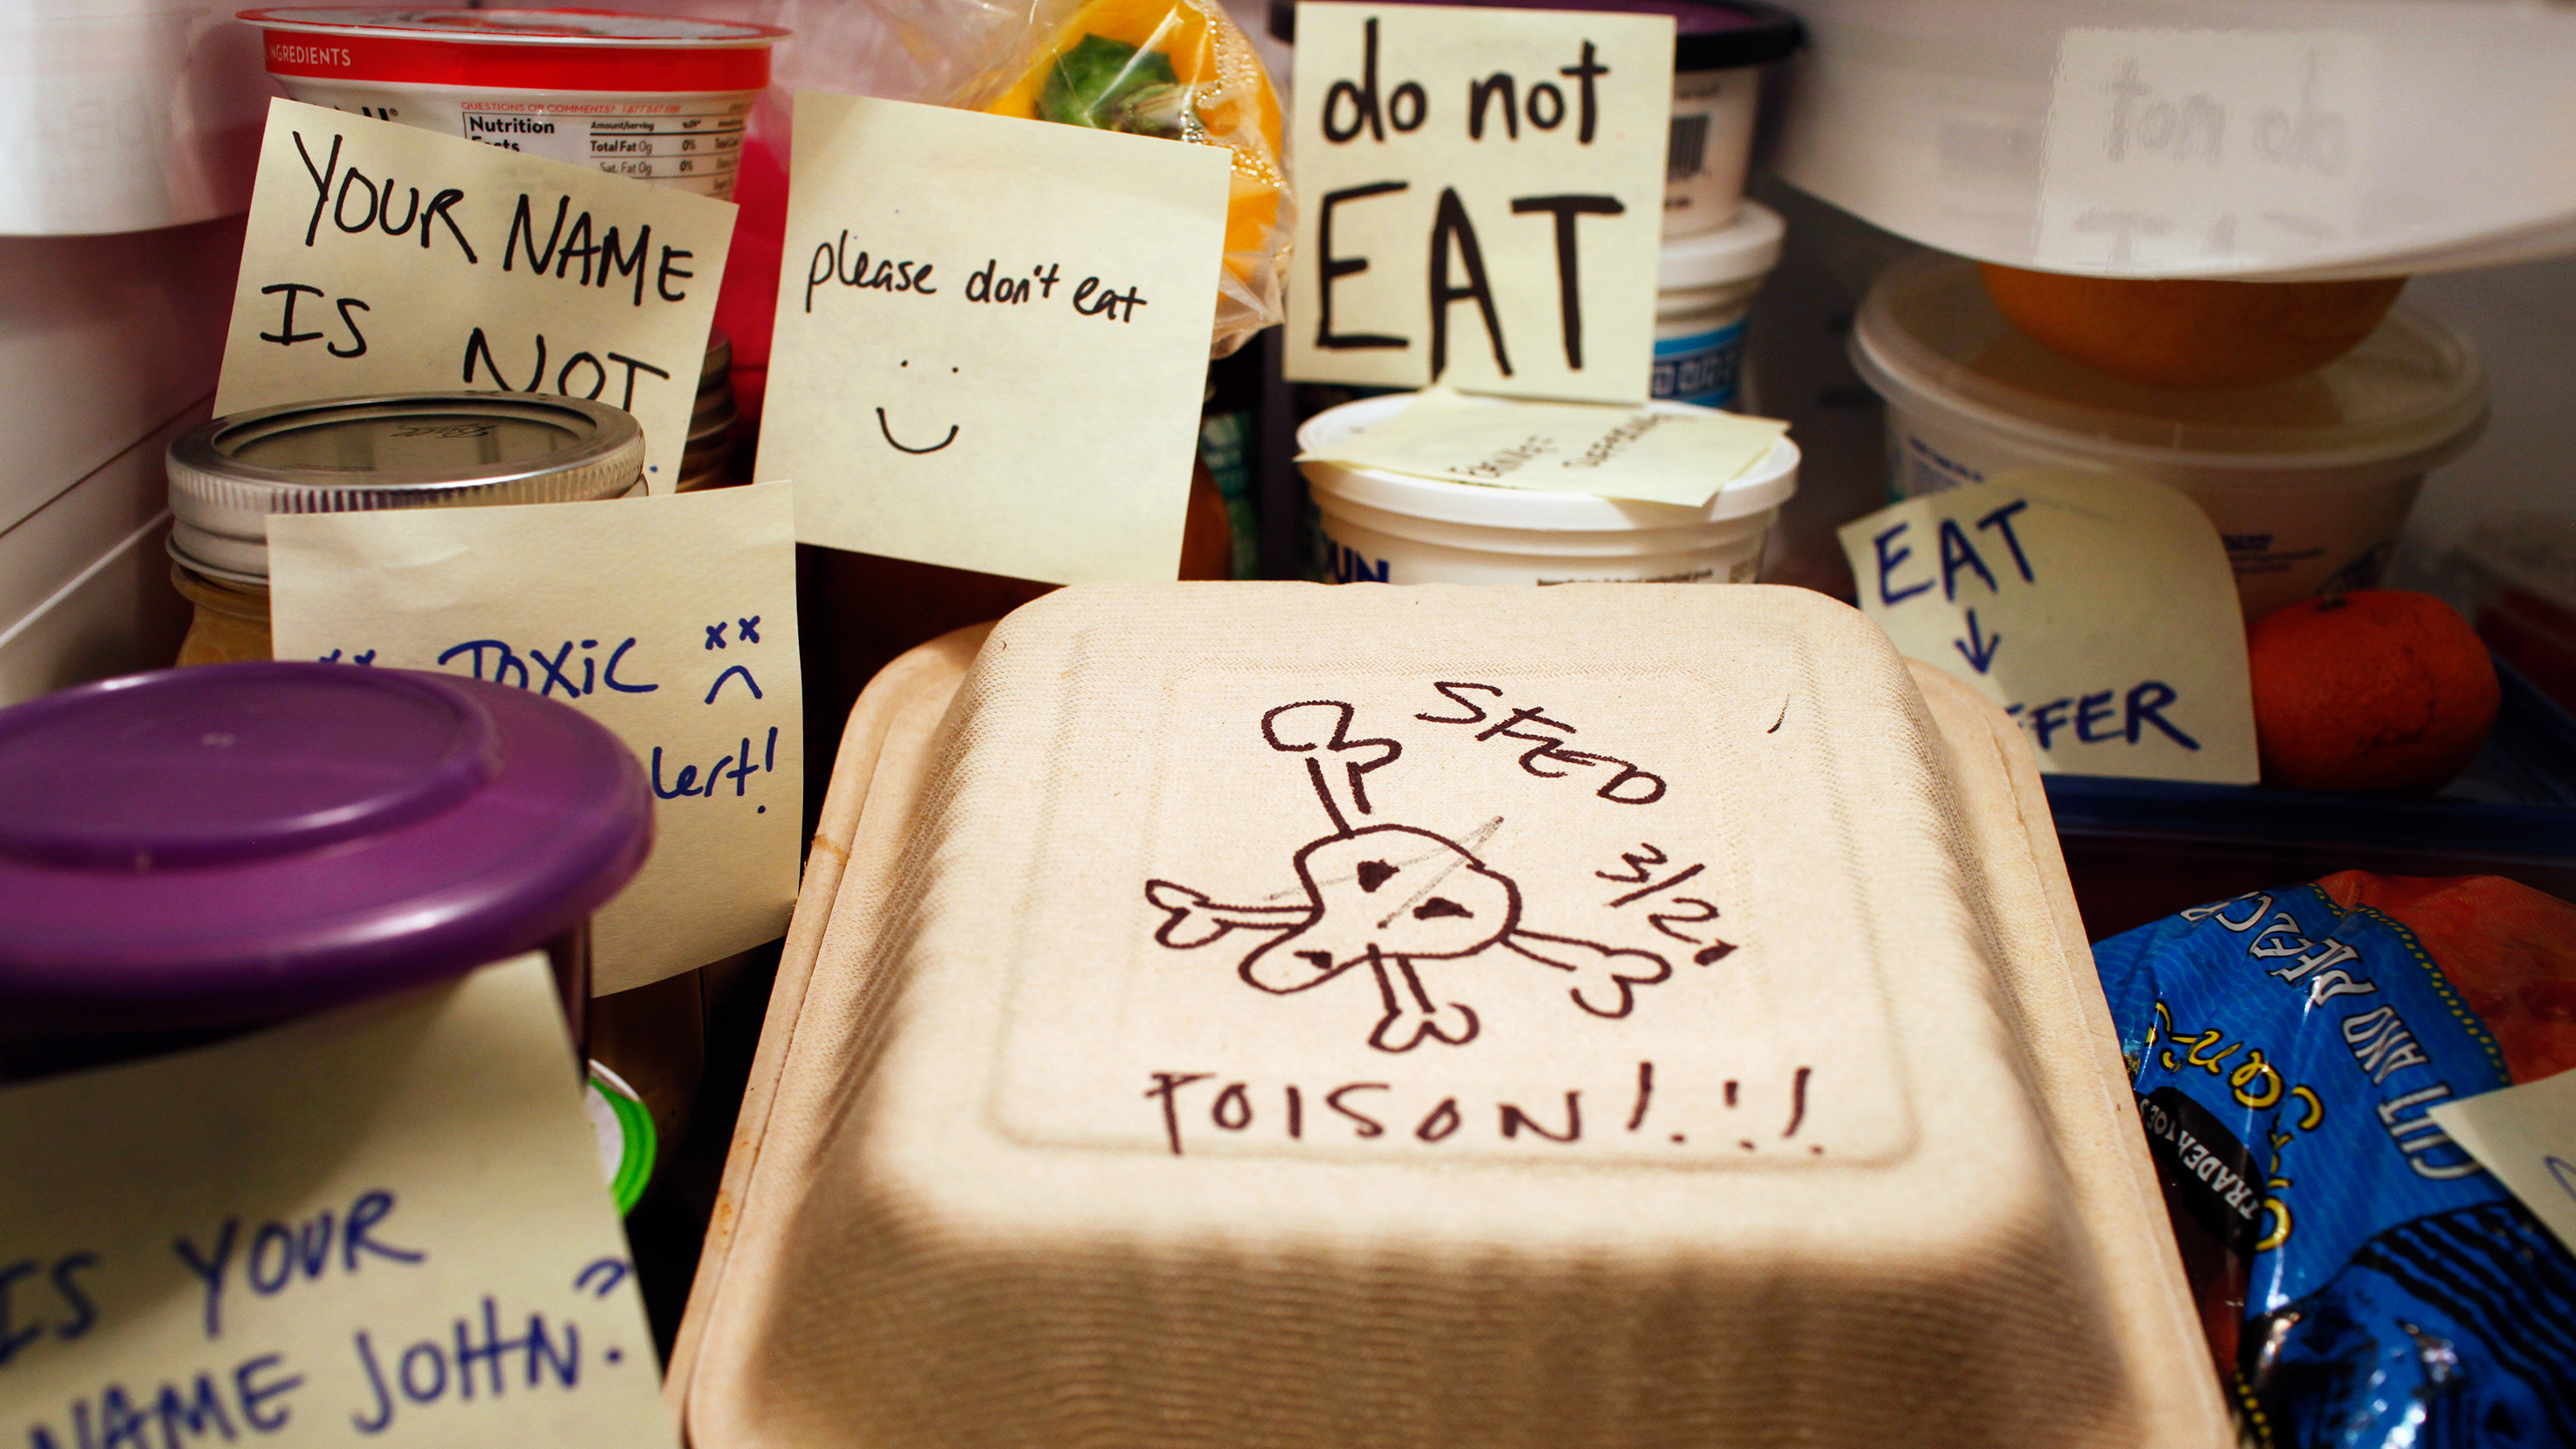 Foraging In The Office Fridge: Petty Theft Or Public Service? : The Salt :  NPR